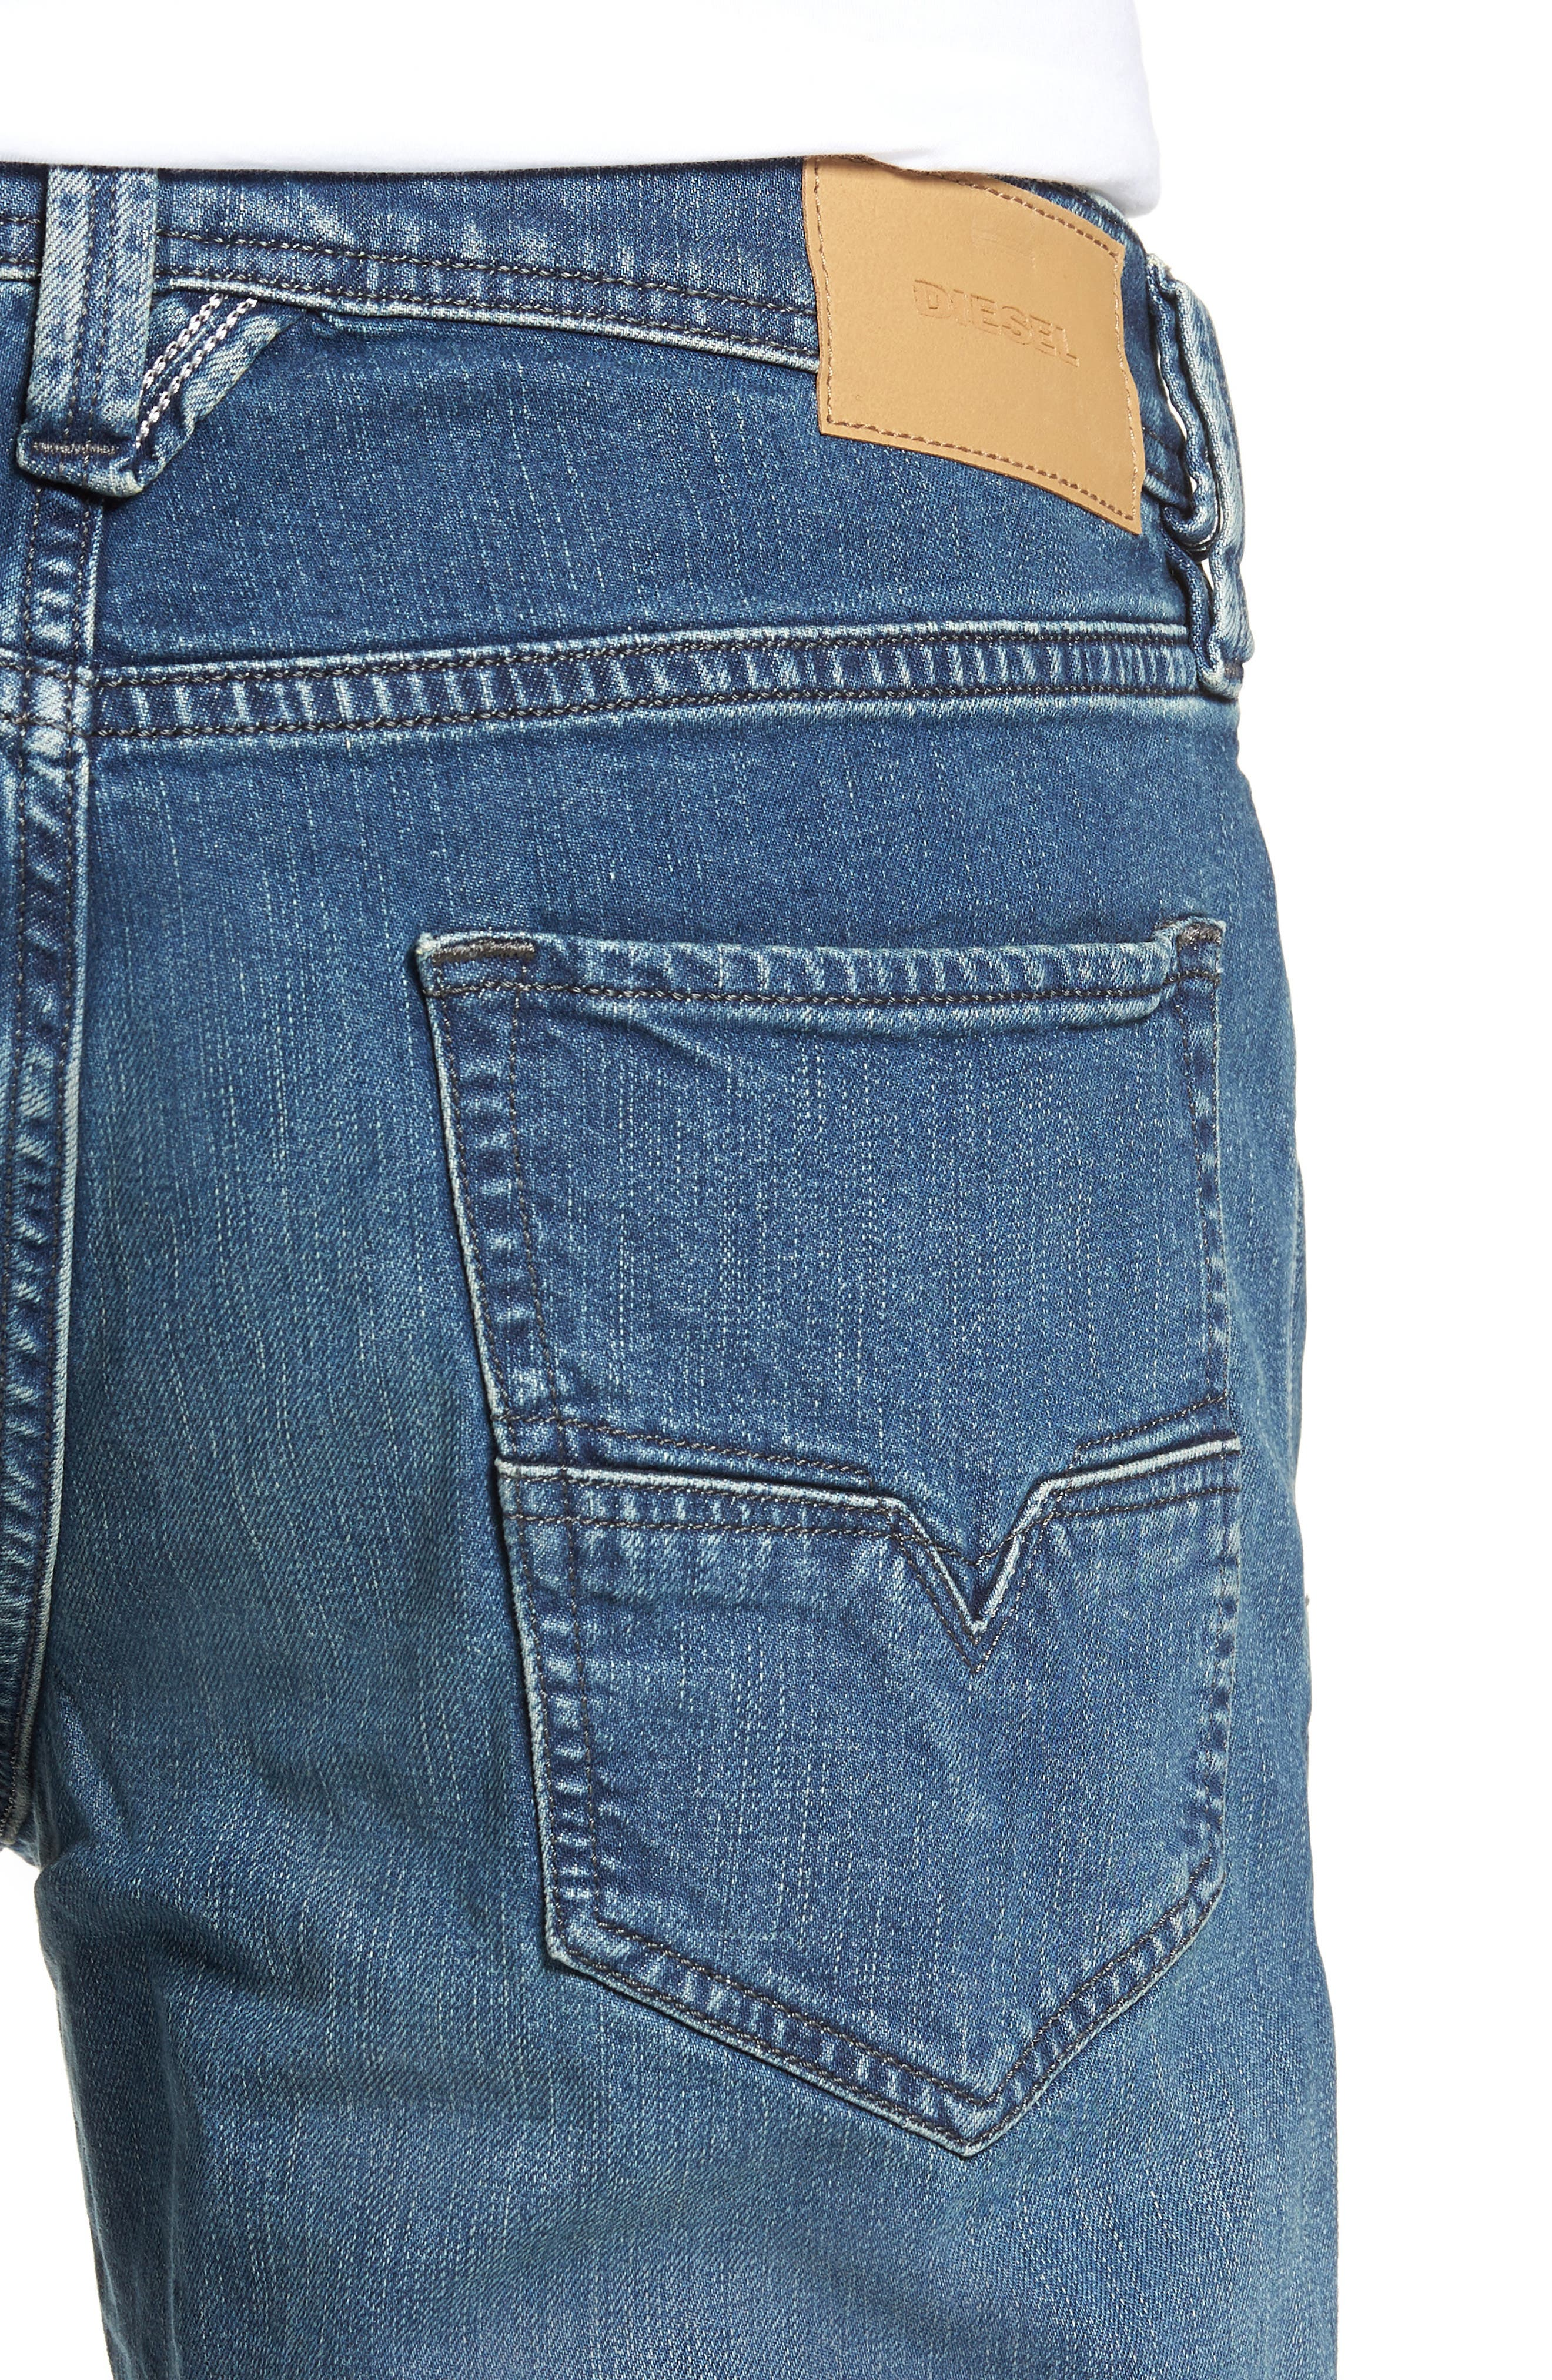 Larkee Relaxed Fit Jeans,                             Alternate thumbnail 4, color,                             400